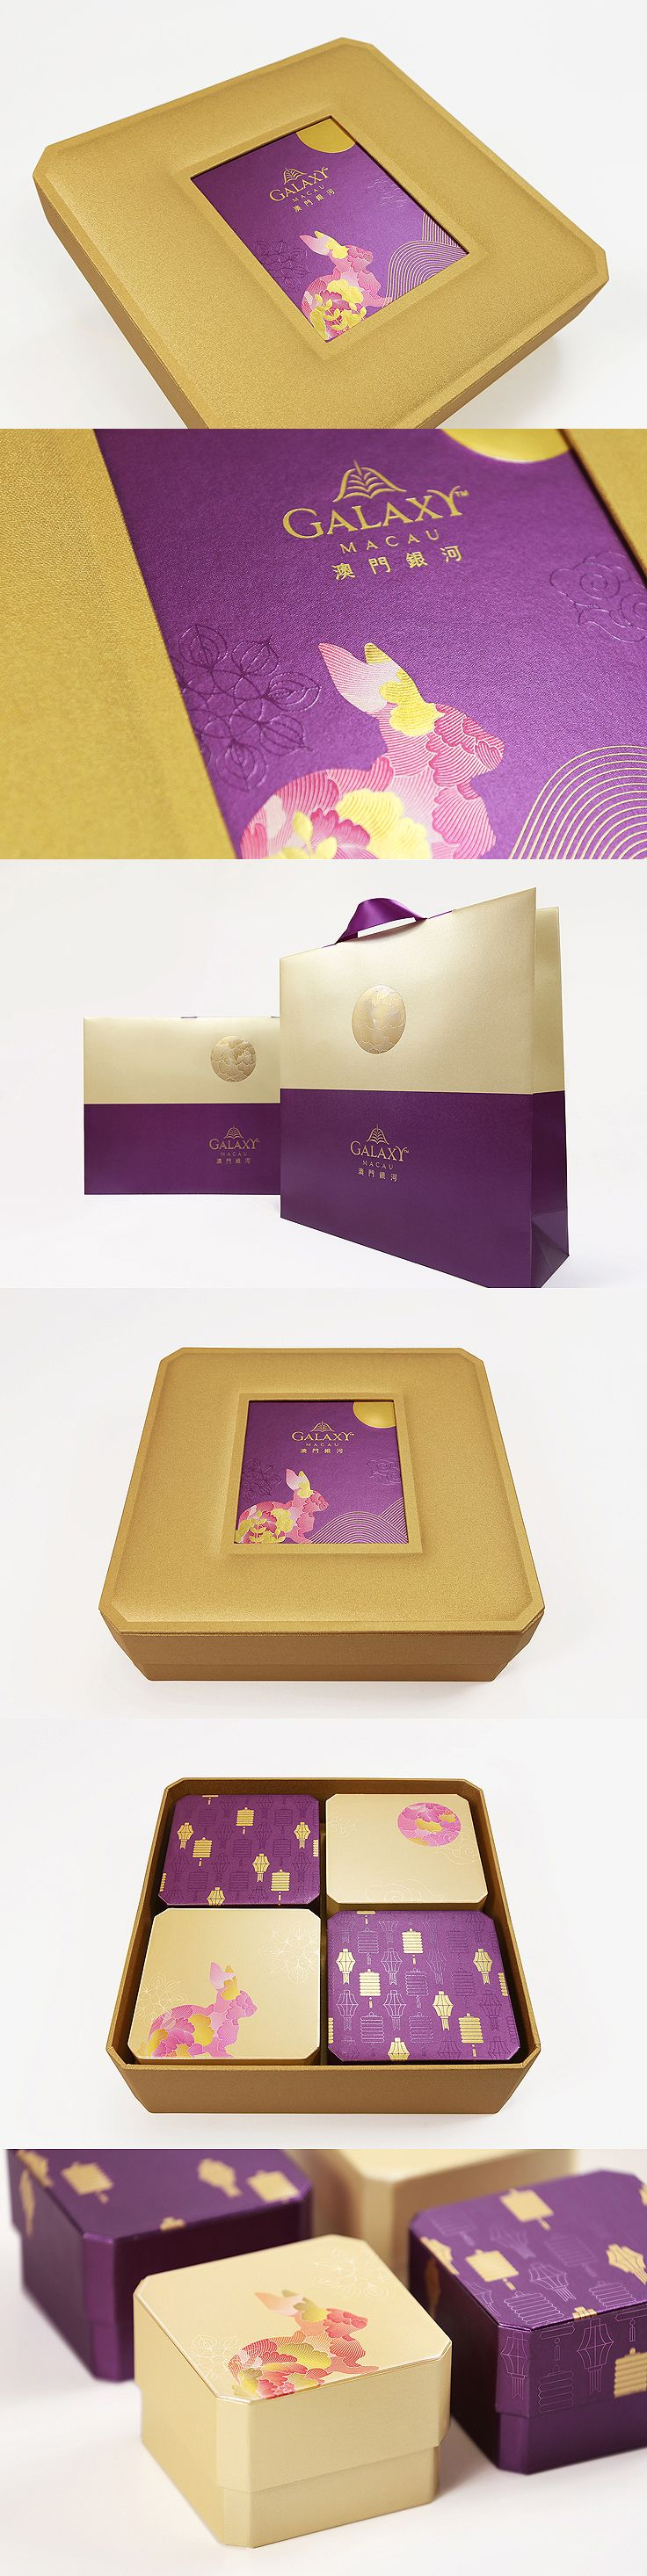 "Mooncake Box Design- Majestic Purple throughout Galaxy Hotel.  An idiom ""Majestic Purple Comes from East"" was innovated to the packaging design of Galaxy Hotel mooncake box. Concept of cover is a painting of Chinese dynastic scroll. Individual boxes of Full moon, rabbit and lanterns with UV effect integrated the harmony of majestic purple and tradition of Mid-Autumn Festival. PD"